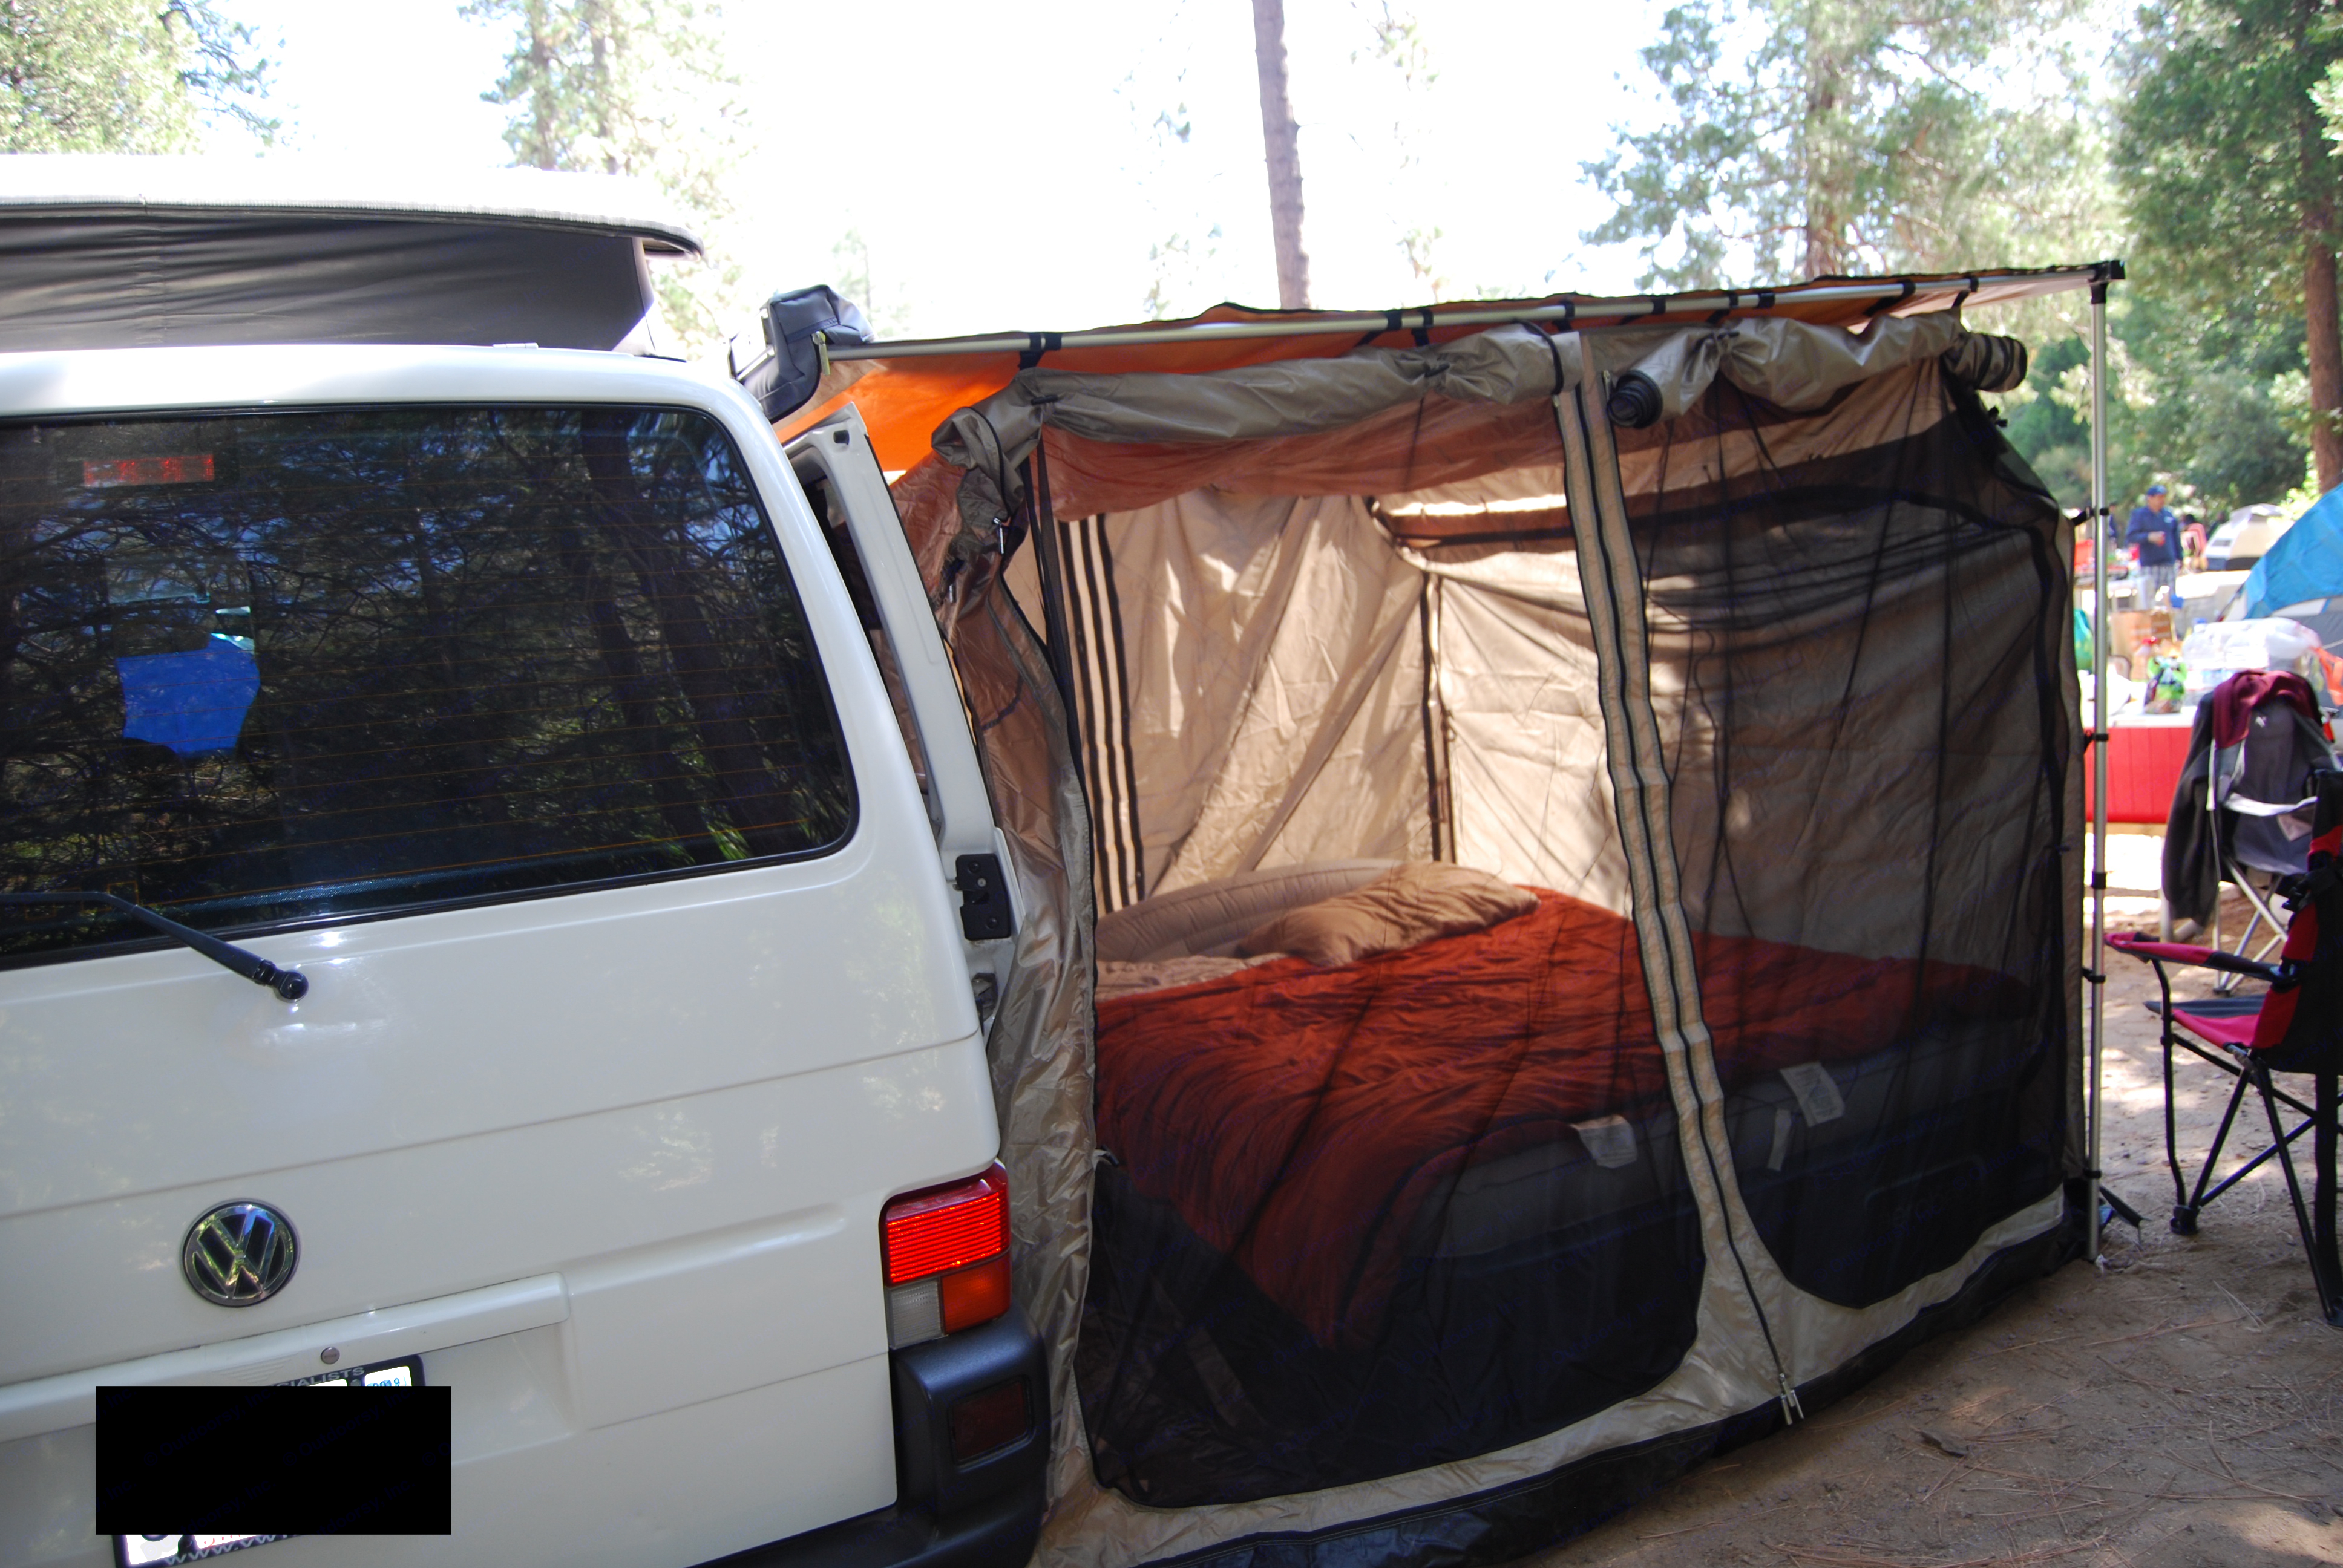 Fully enclosed awning room is spacious enough for a queen-sized air mattress and side flaps roll up to let in fresh air but screens keep pesky insects out.. Volkswagen T4 Multivan Westfalia 2002